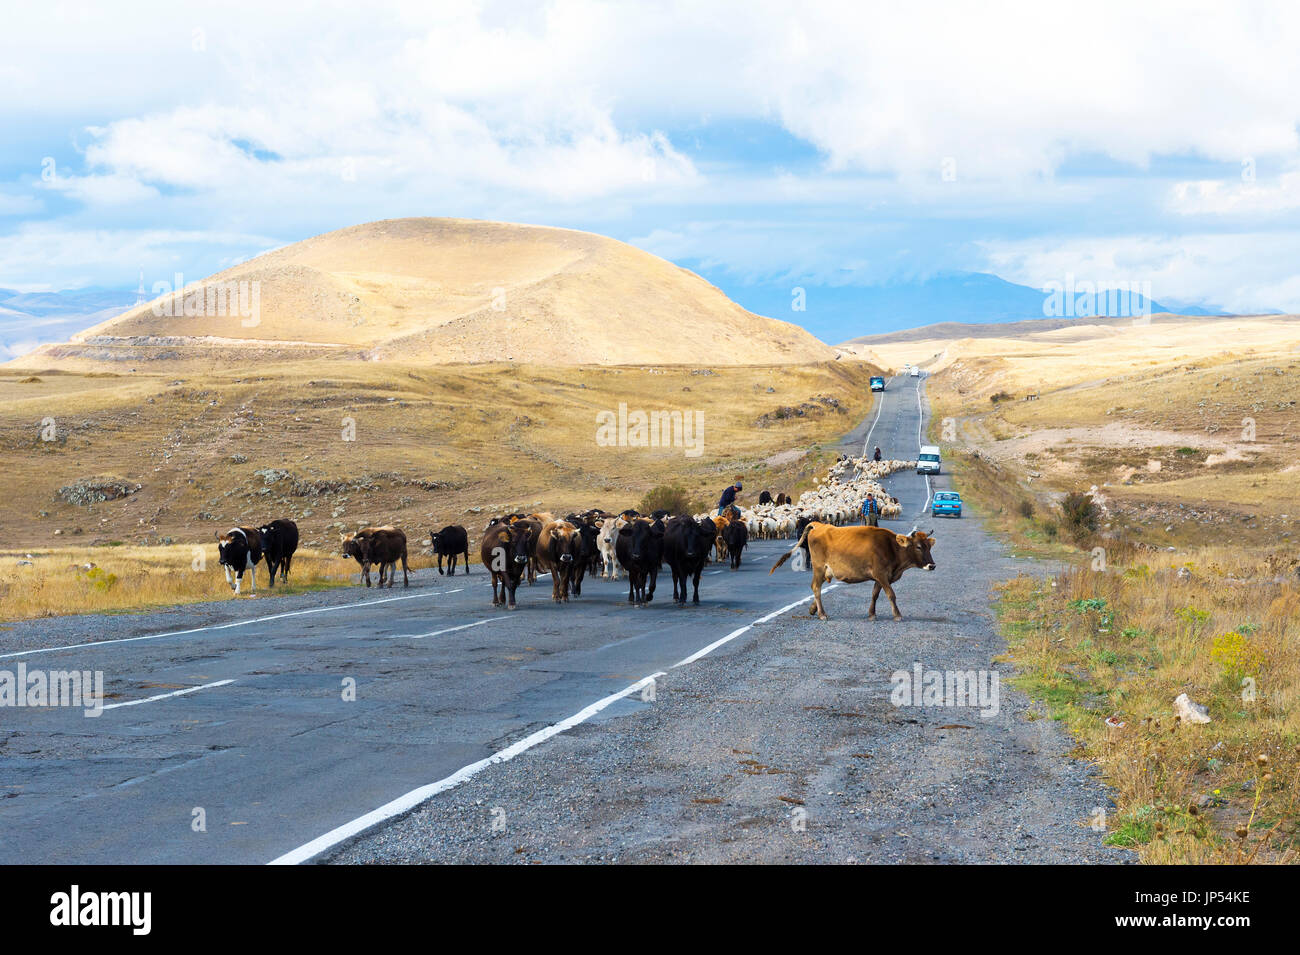 Shephard conducting a group of cows and sheep down a road, Tavush Province, Armenia - Stock Image